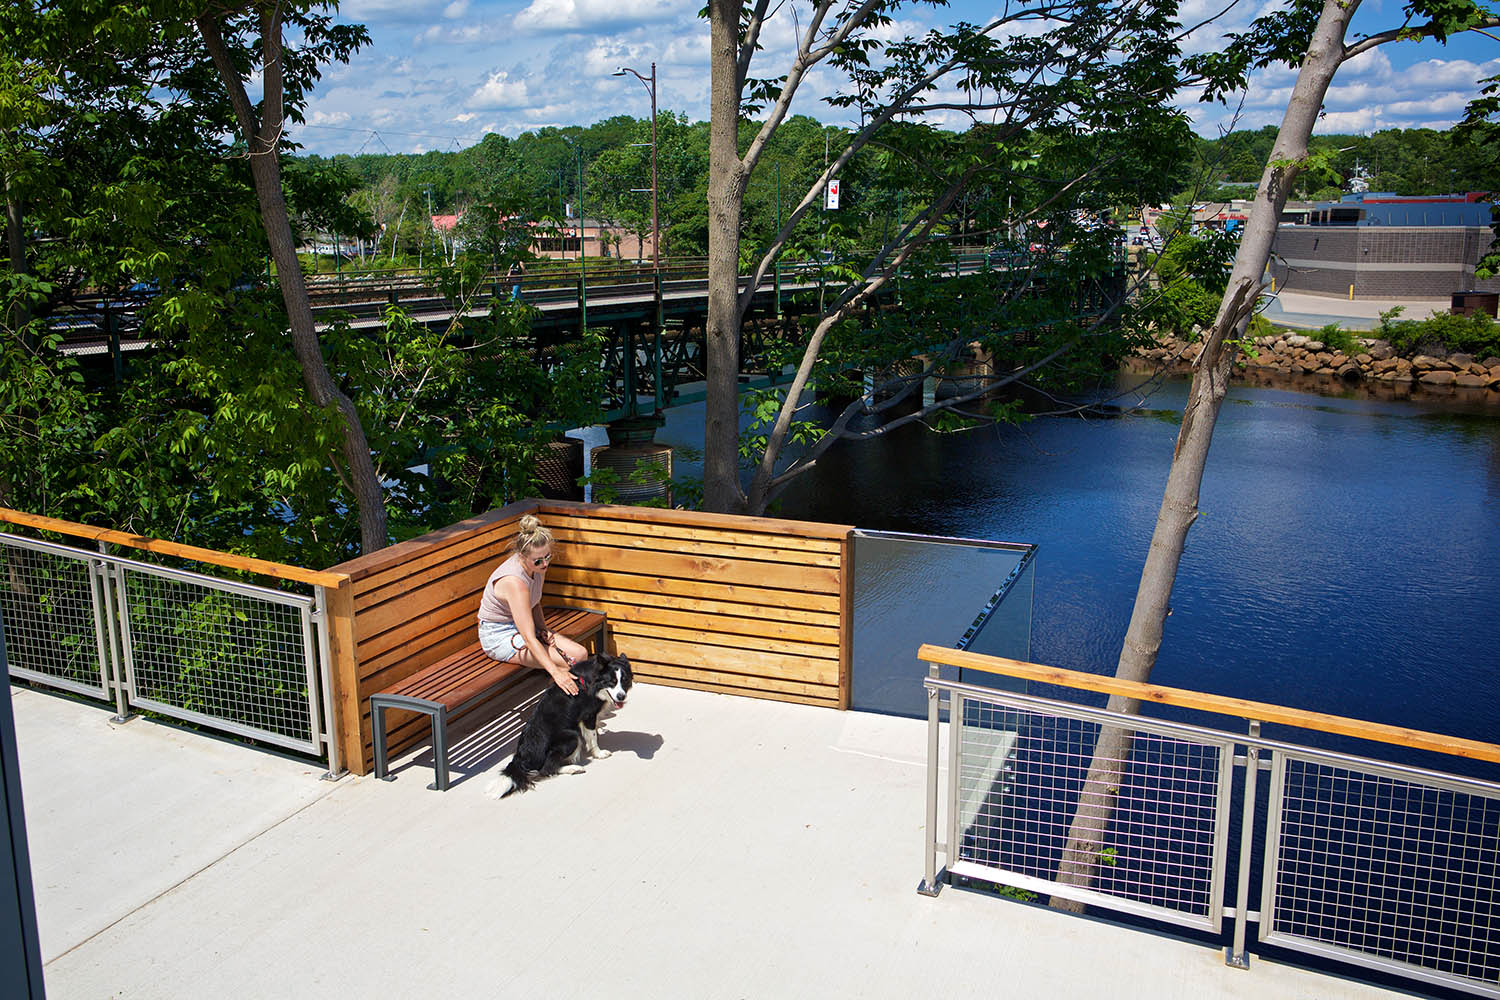 Lookout pods create spaces for reading, conversation, or enjoying the view.